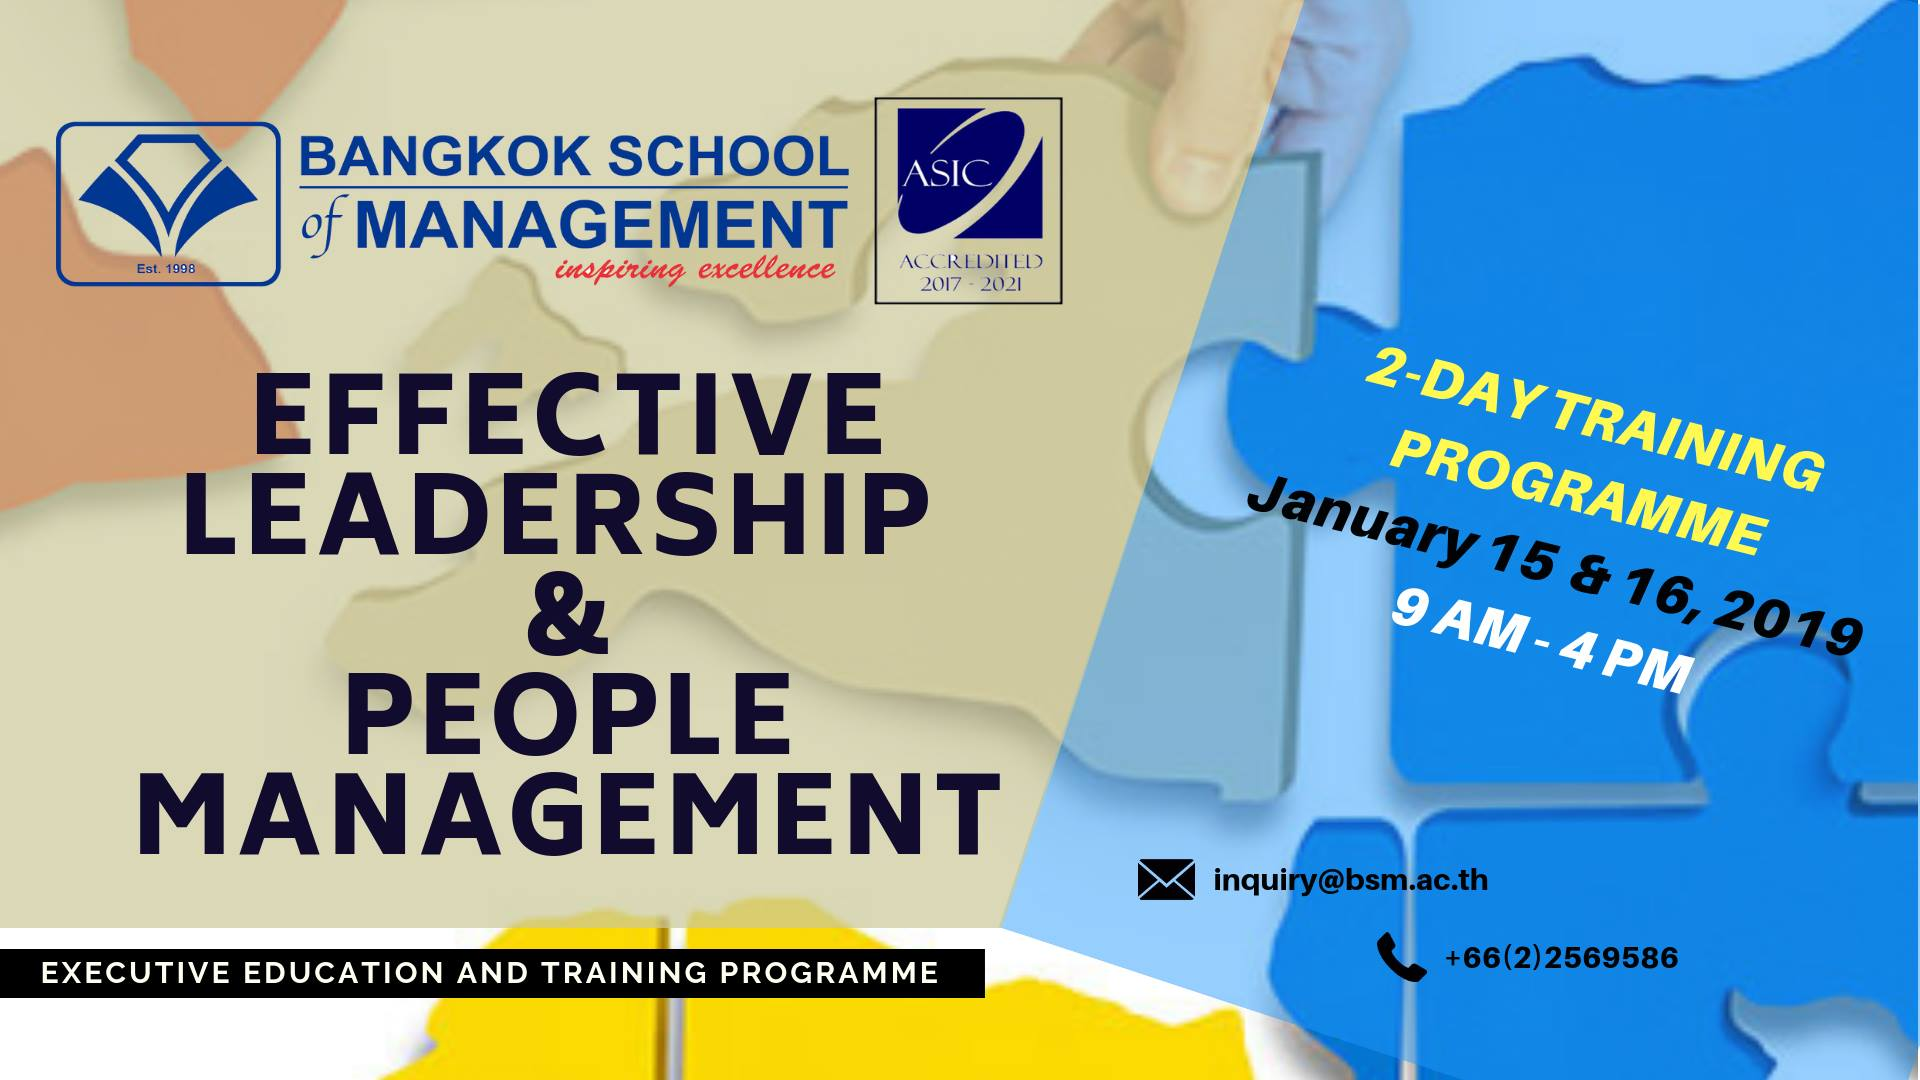 Date: January 15 &#8211; 16, 2019<br></br>Effective Leadership &#038; People Management